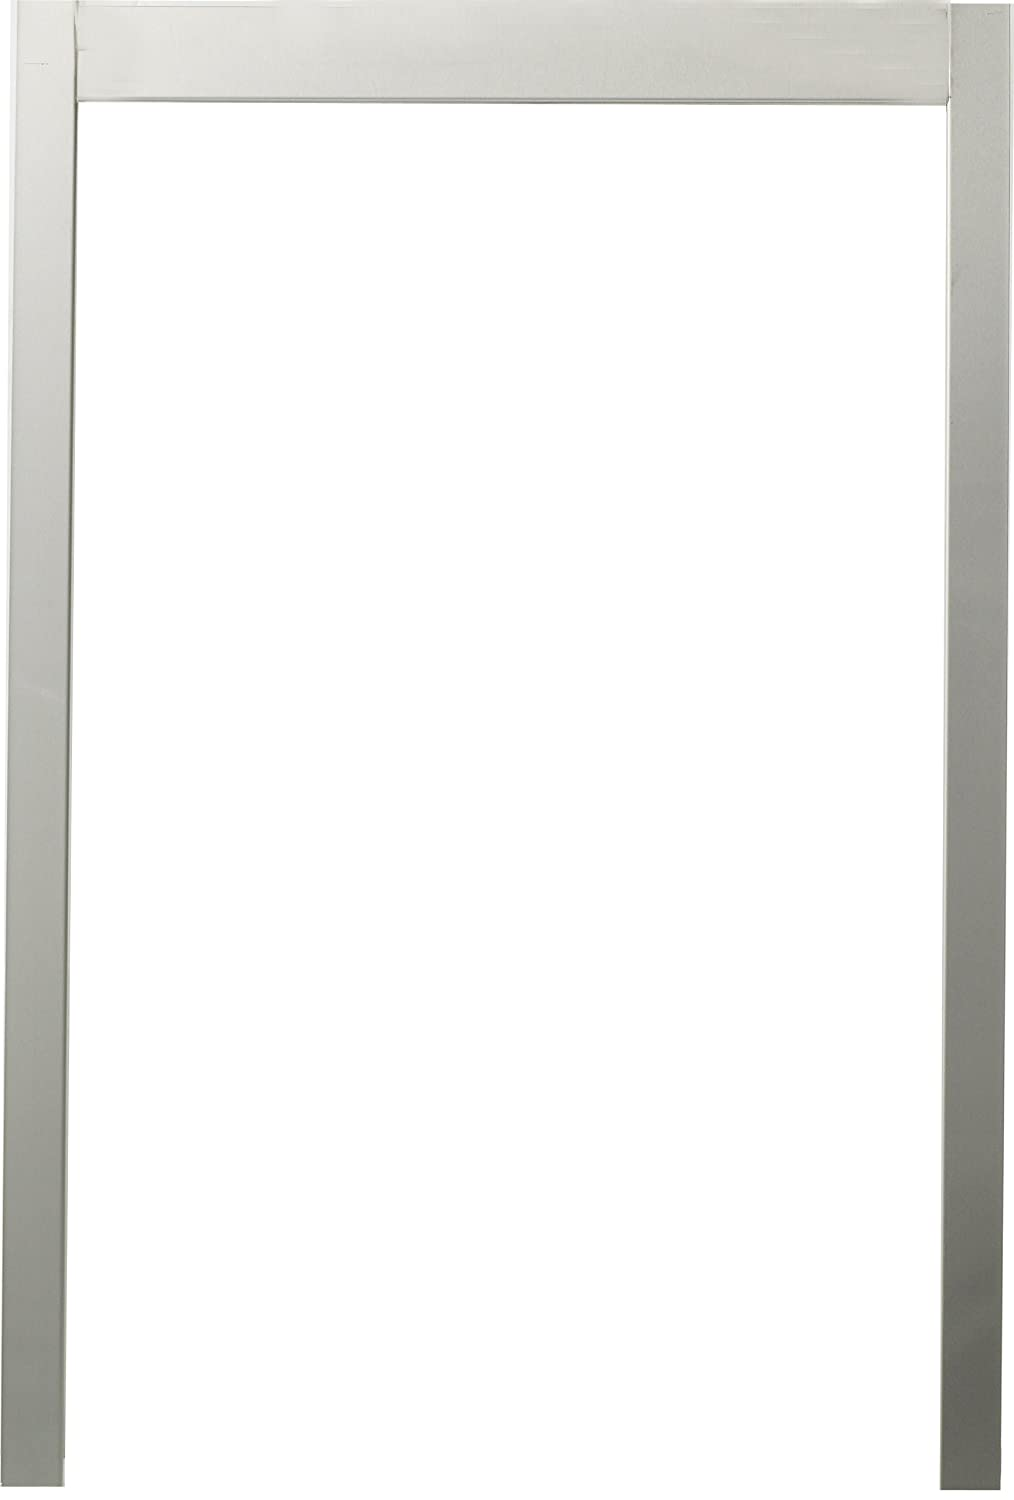 Bull Outdoor Products 99935 Refrigerator Frame, Stainless Steel